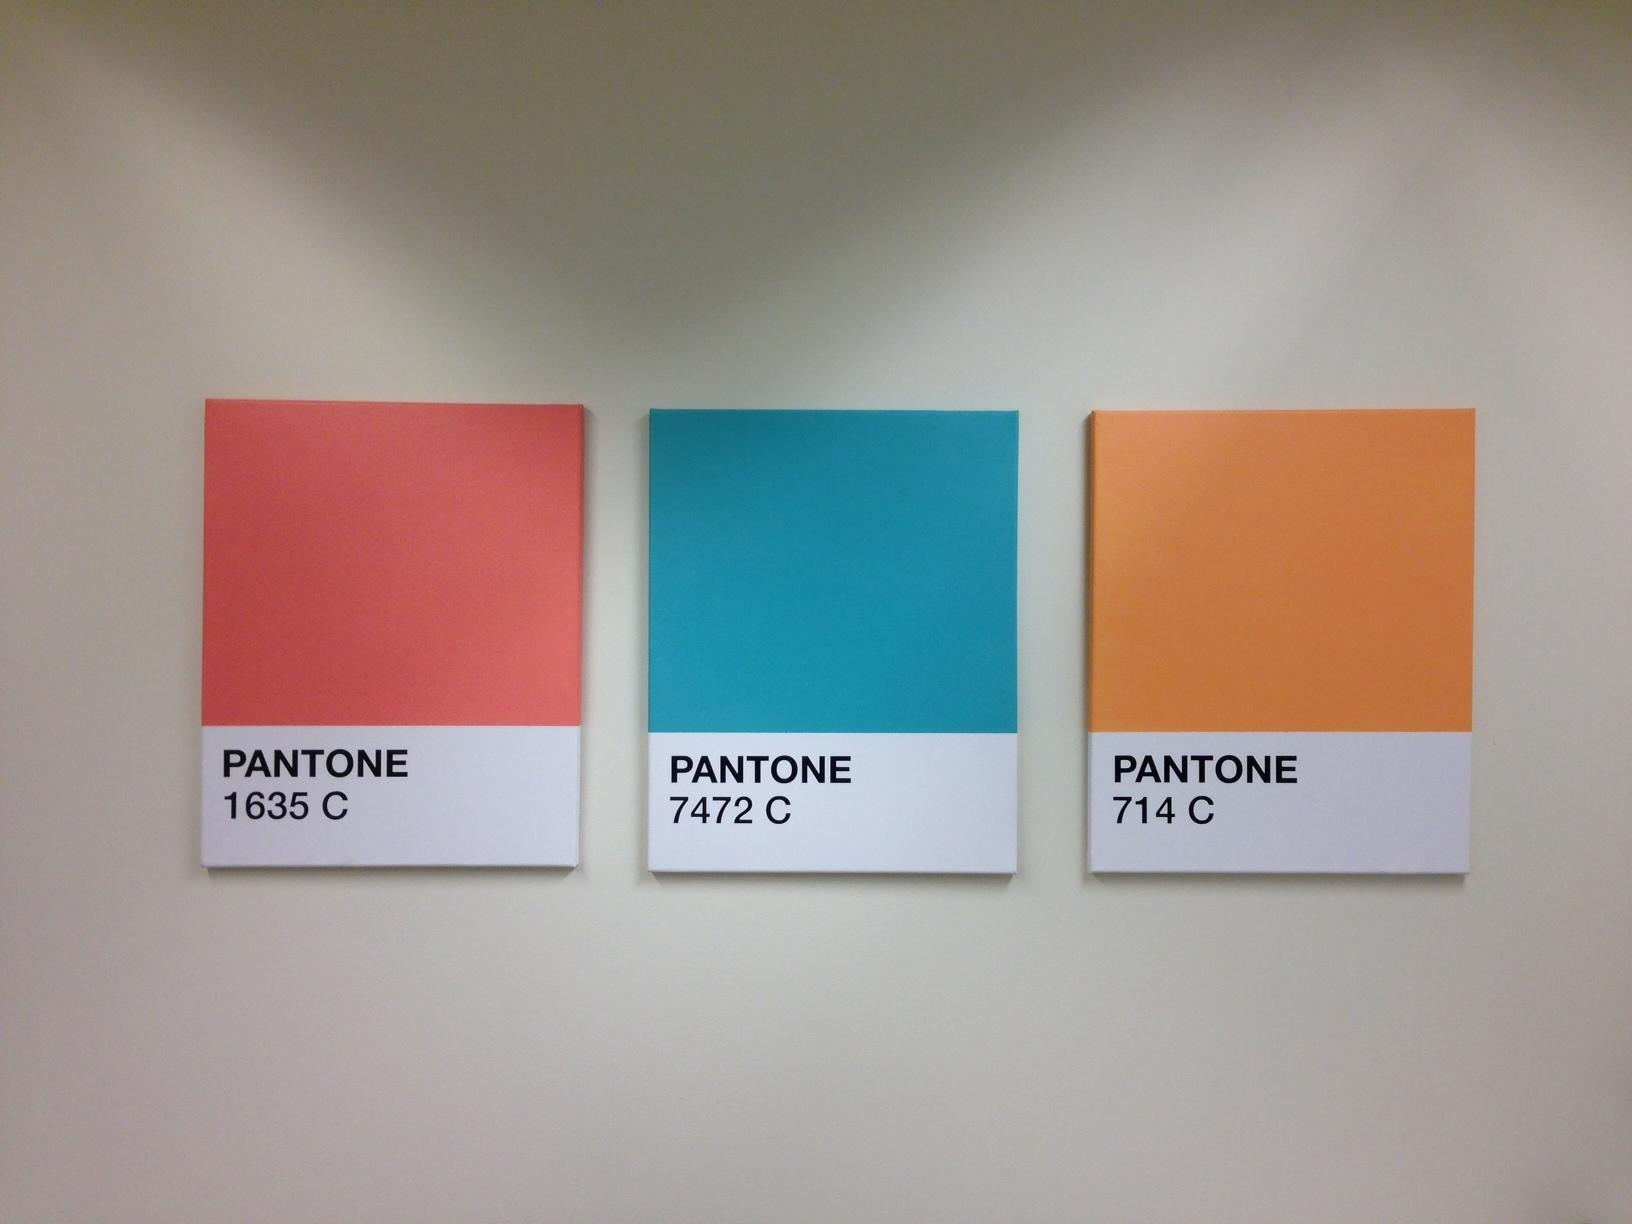 Pantone Canvas Wall Art Color Swatches | The Rodimels Family Blog Throughout Paint Swatch Wall Art (View 14 of 20)